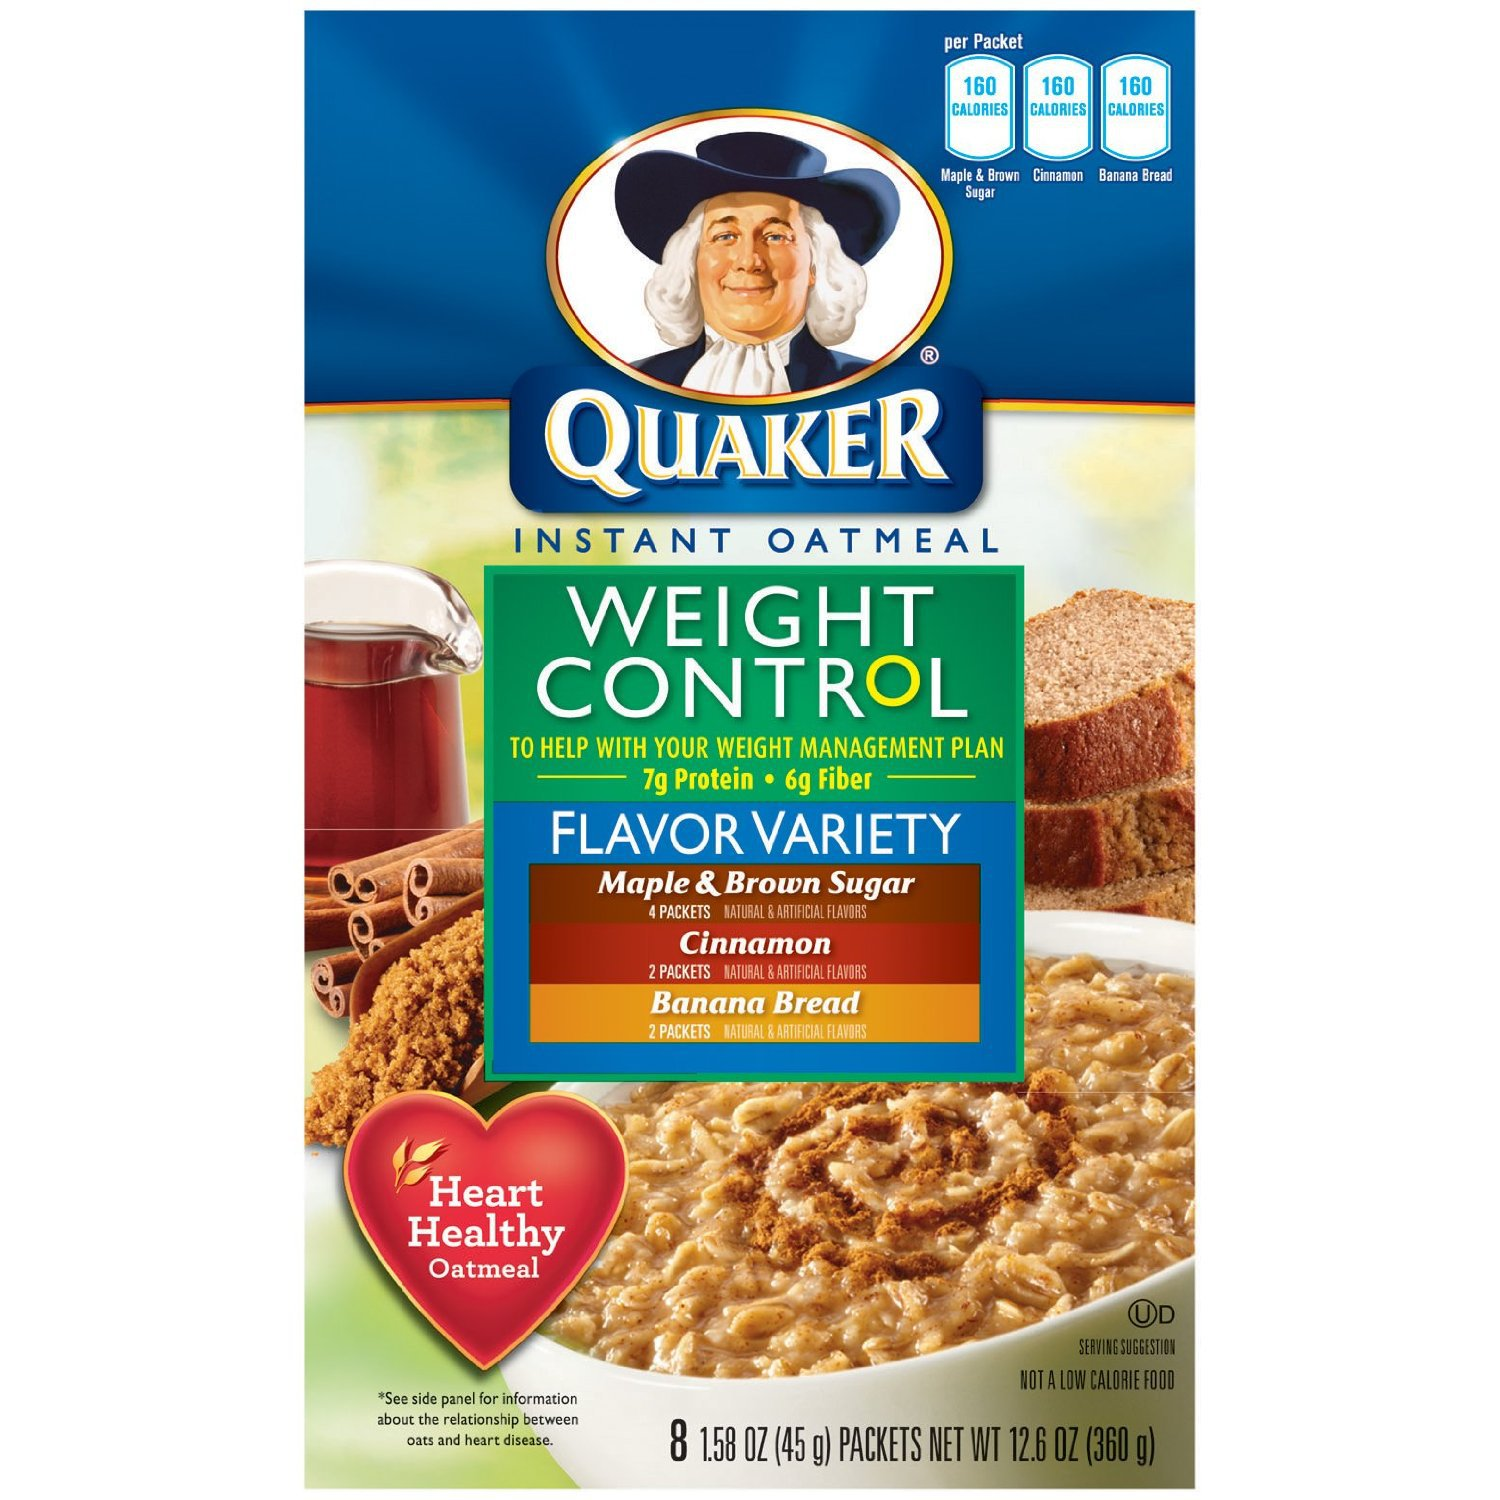 Control Weight Instant Oatmeal Quaker